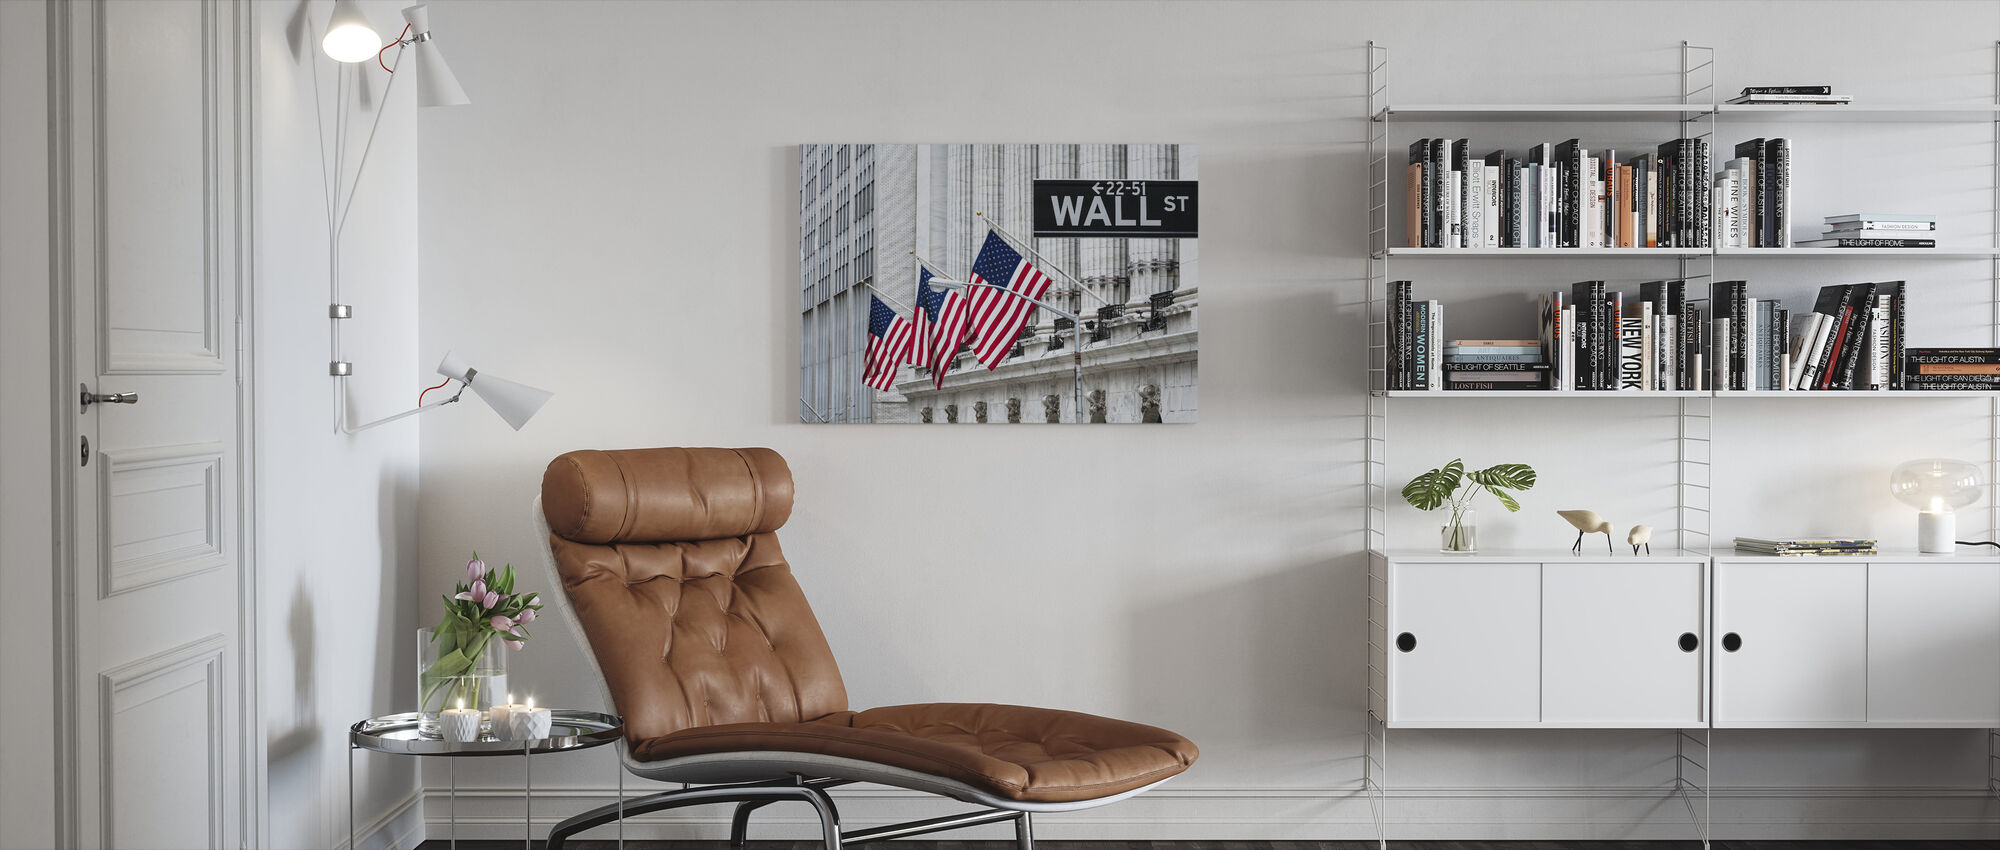 New York Wall Street - Canvas print - Living Room